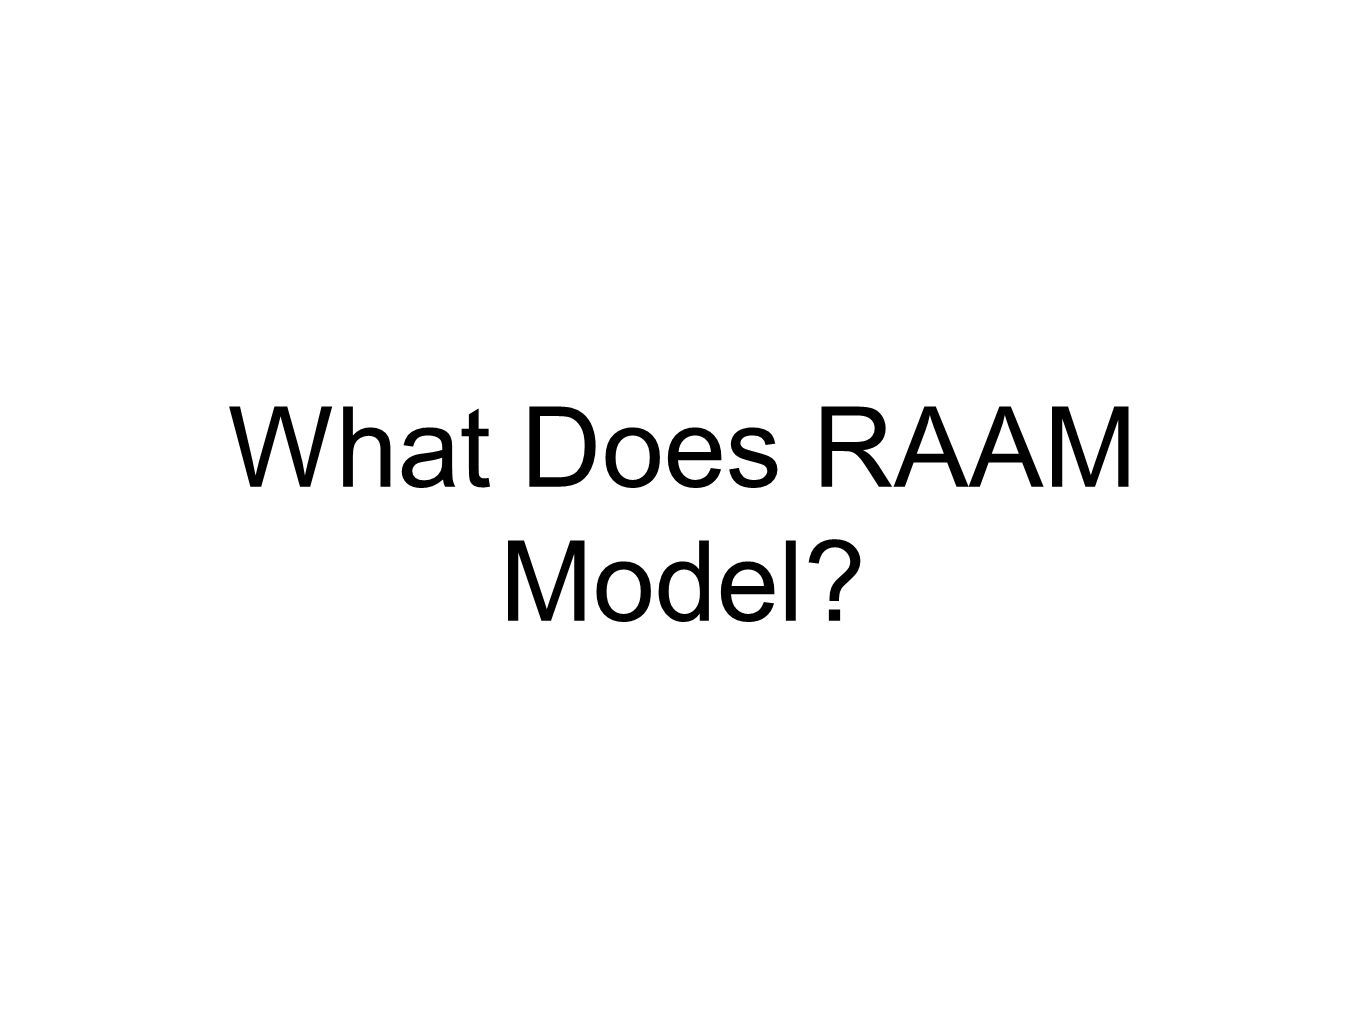 What Does RAAM Model